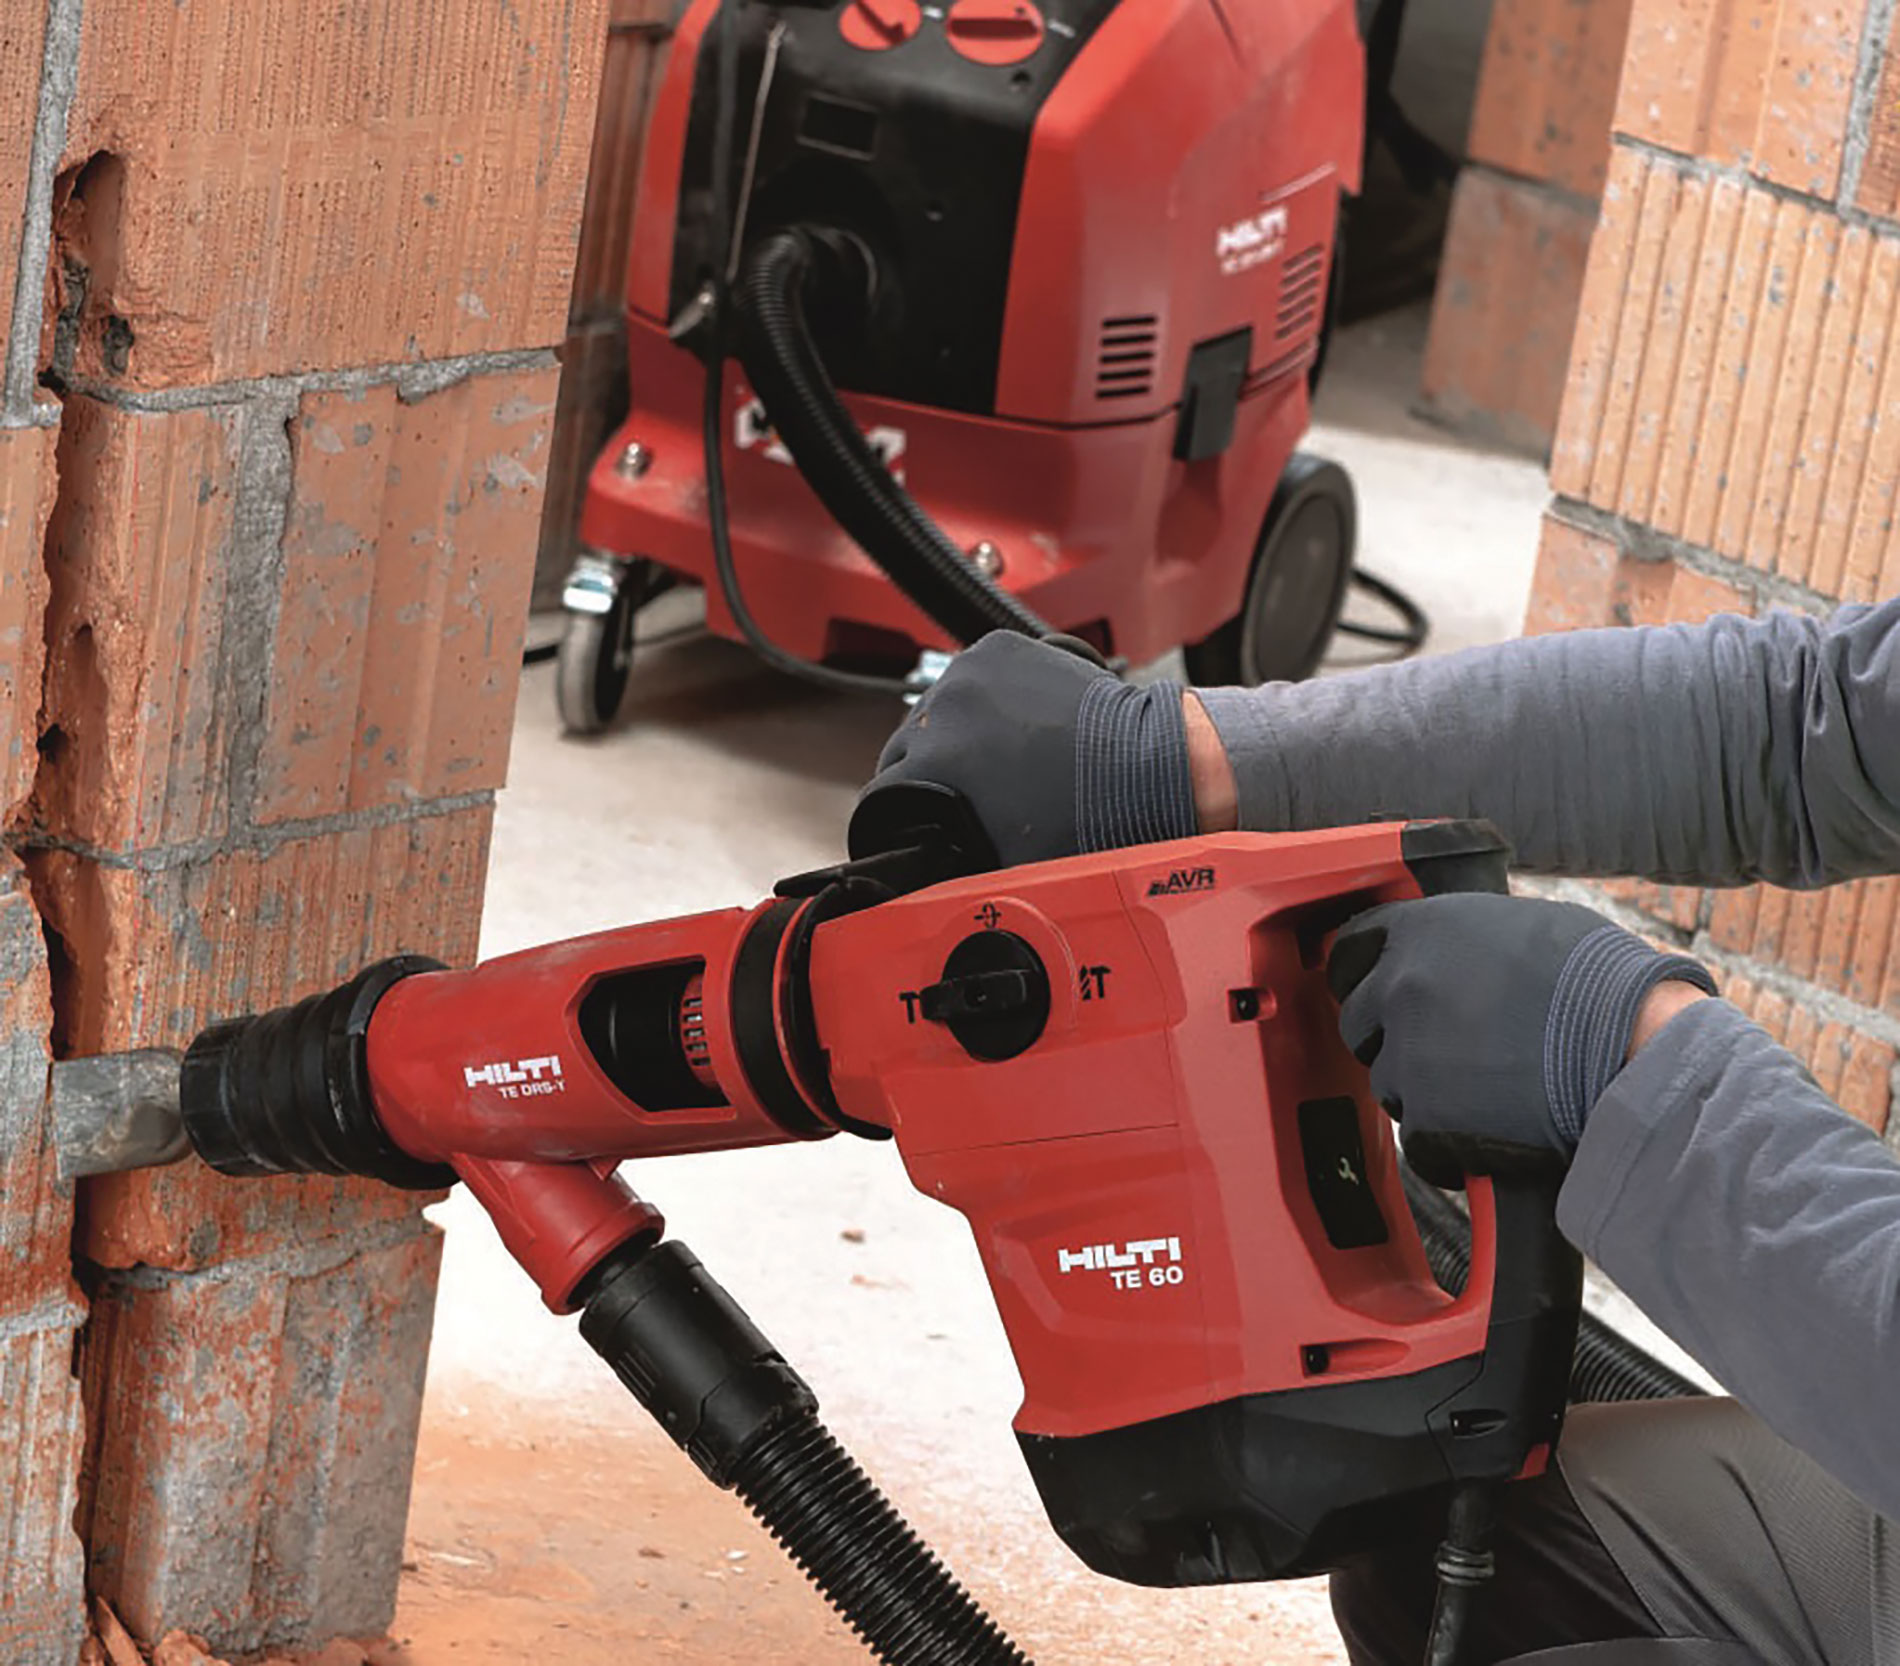 The light but powerful Hilti TE 50 SDS-max combihammer is equipped with active vibration reduction and torque control to reduce the stress on the user.